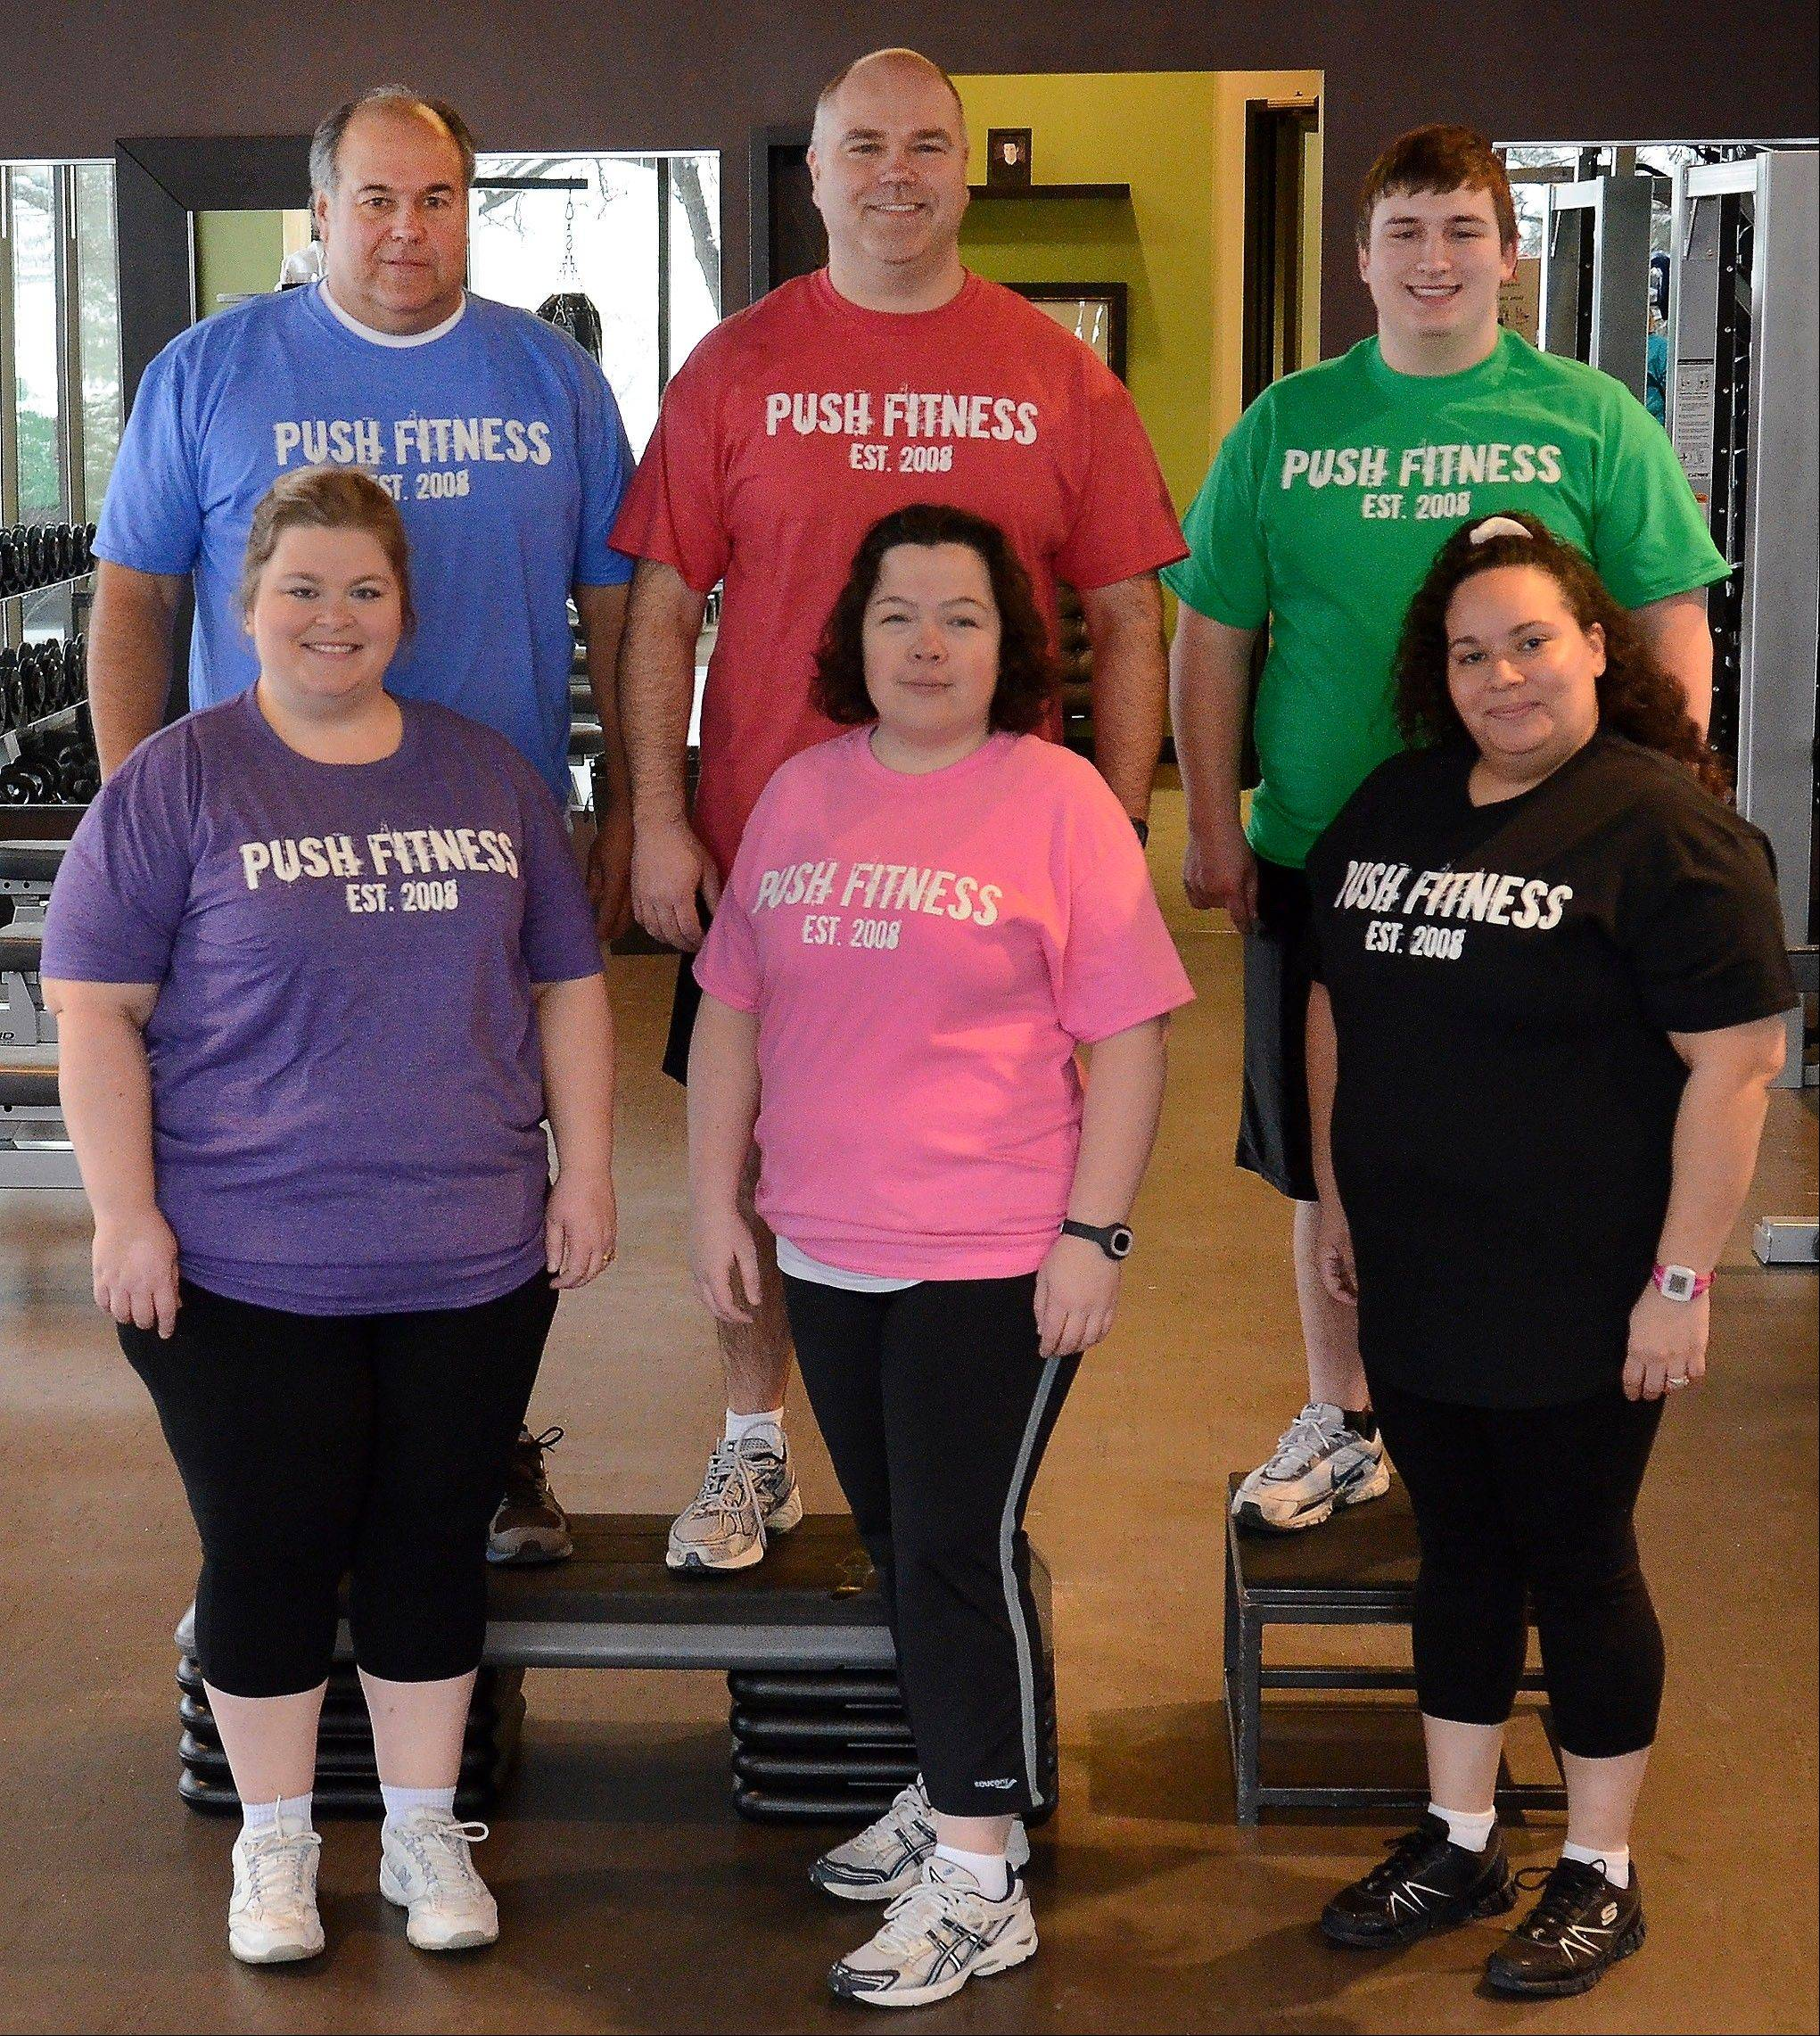 The Fittest Losers are making significant adjustments in their daily food intake, from top left, Mike Paulo, Greg Moehrlin and Joe Gundling. Bottom left, Megan McCarthy-Cook, Karen Castillo and Marianne Costales-Roman.